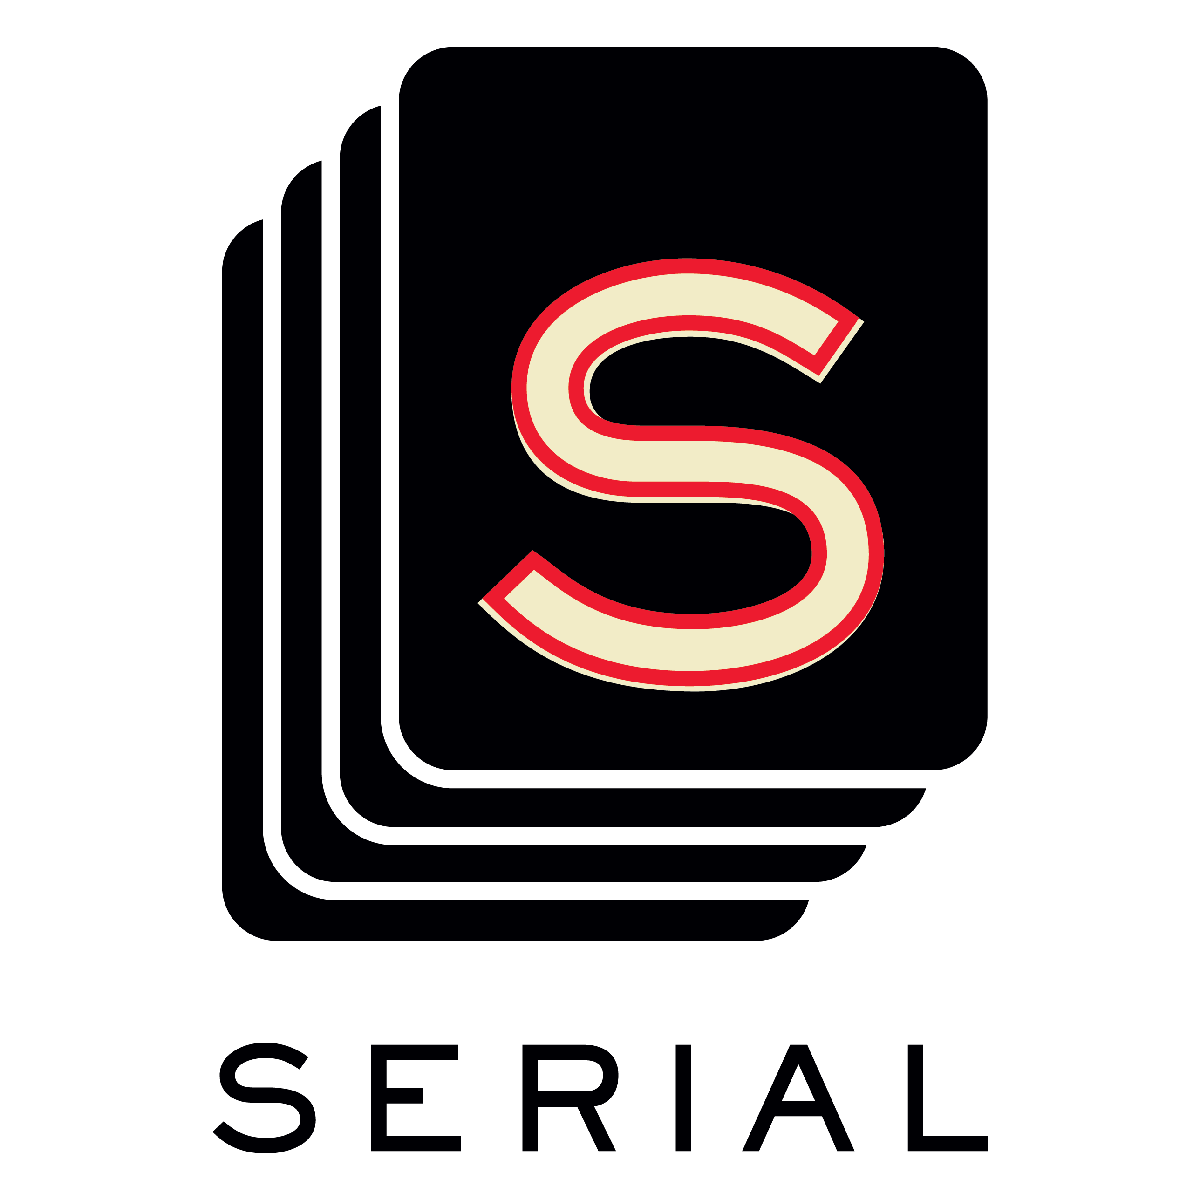 https://i0.wp.com/files.serialpodcast.org/sites/all/modules/custom/serial/img/serial-social-logo.png